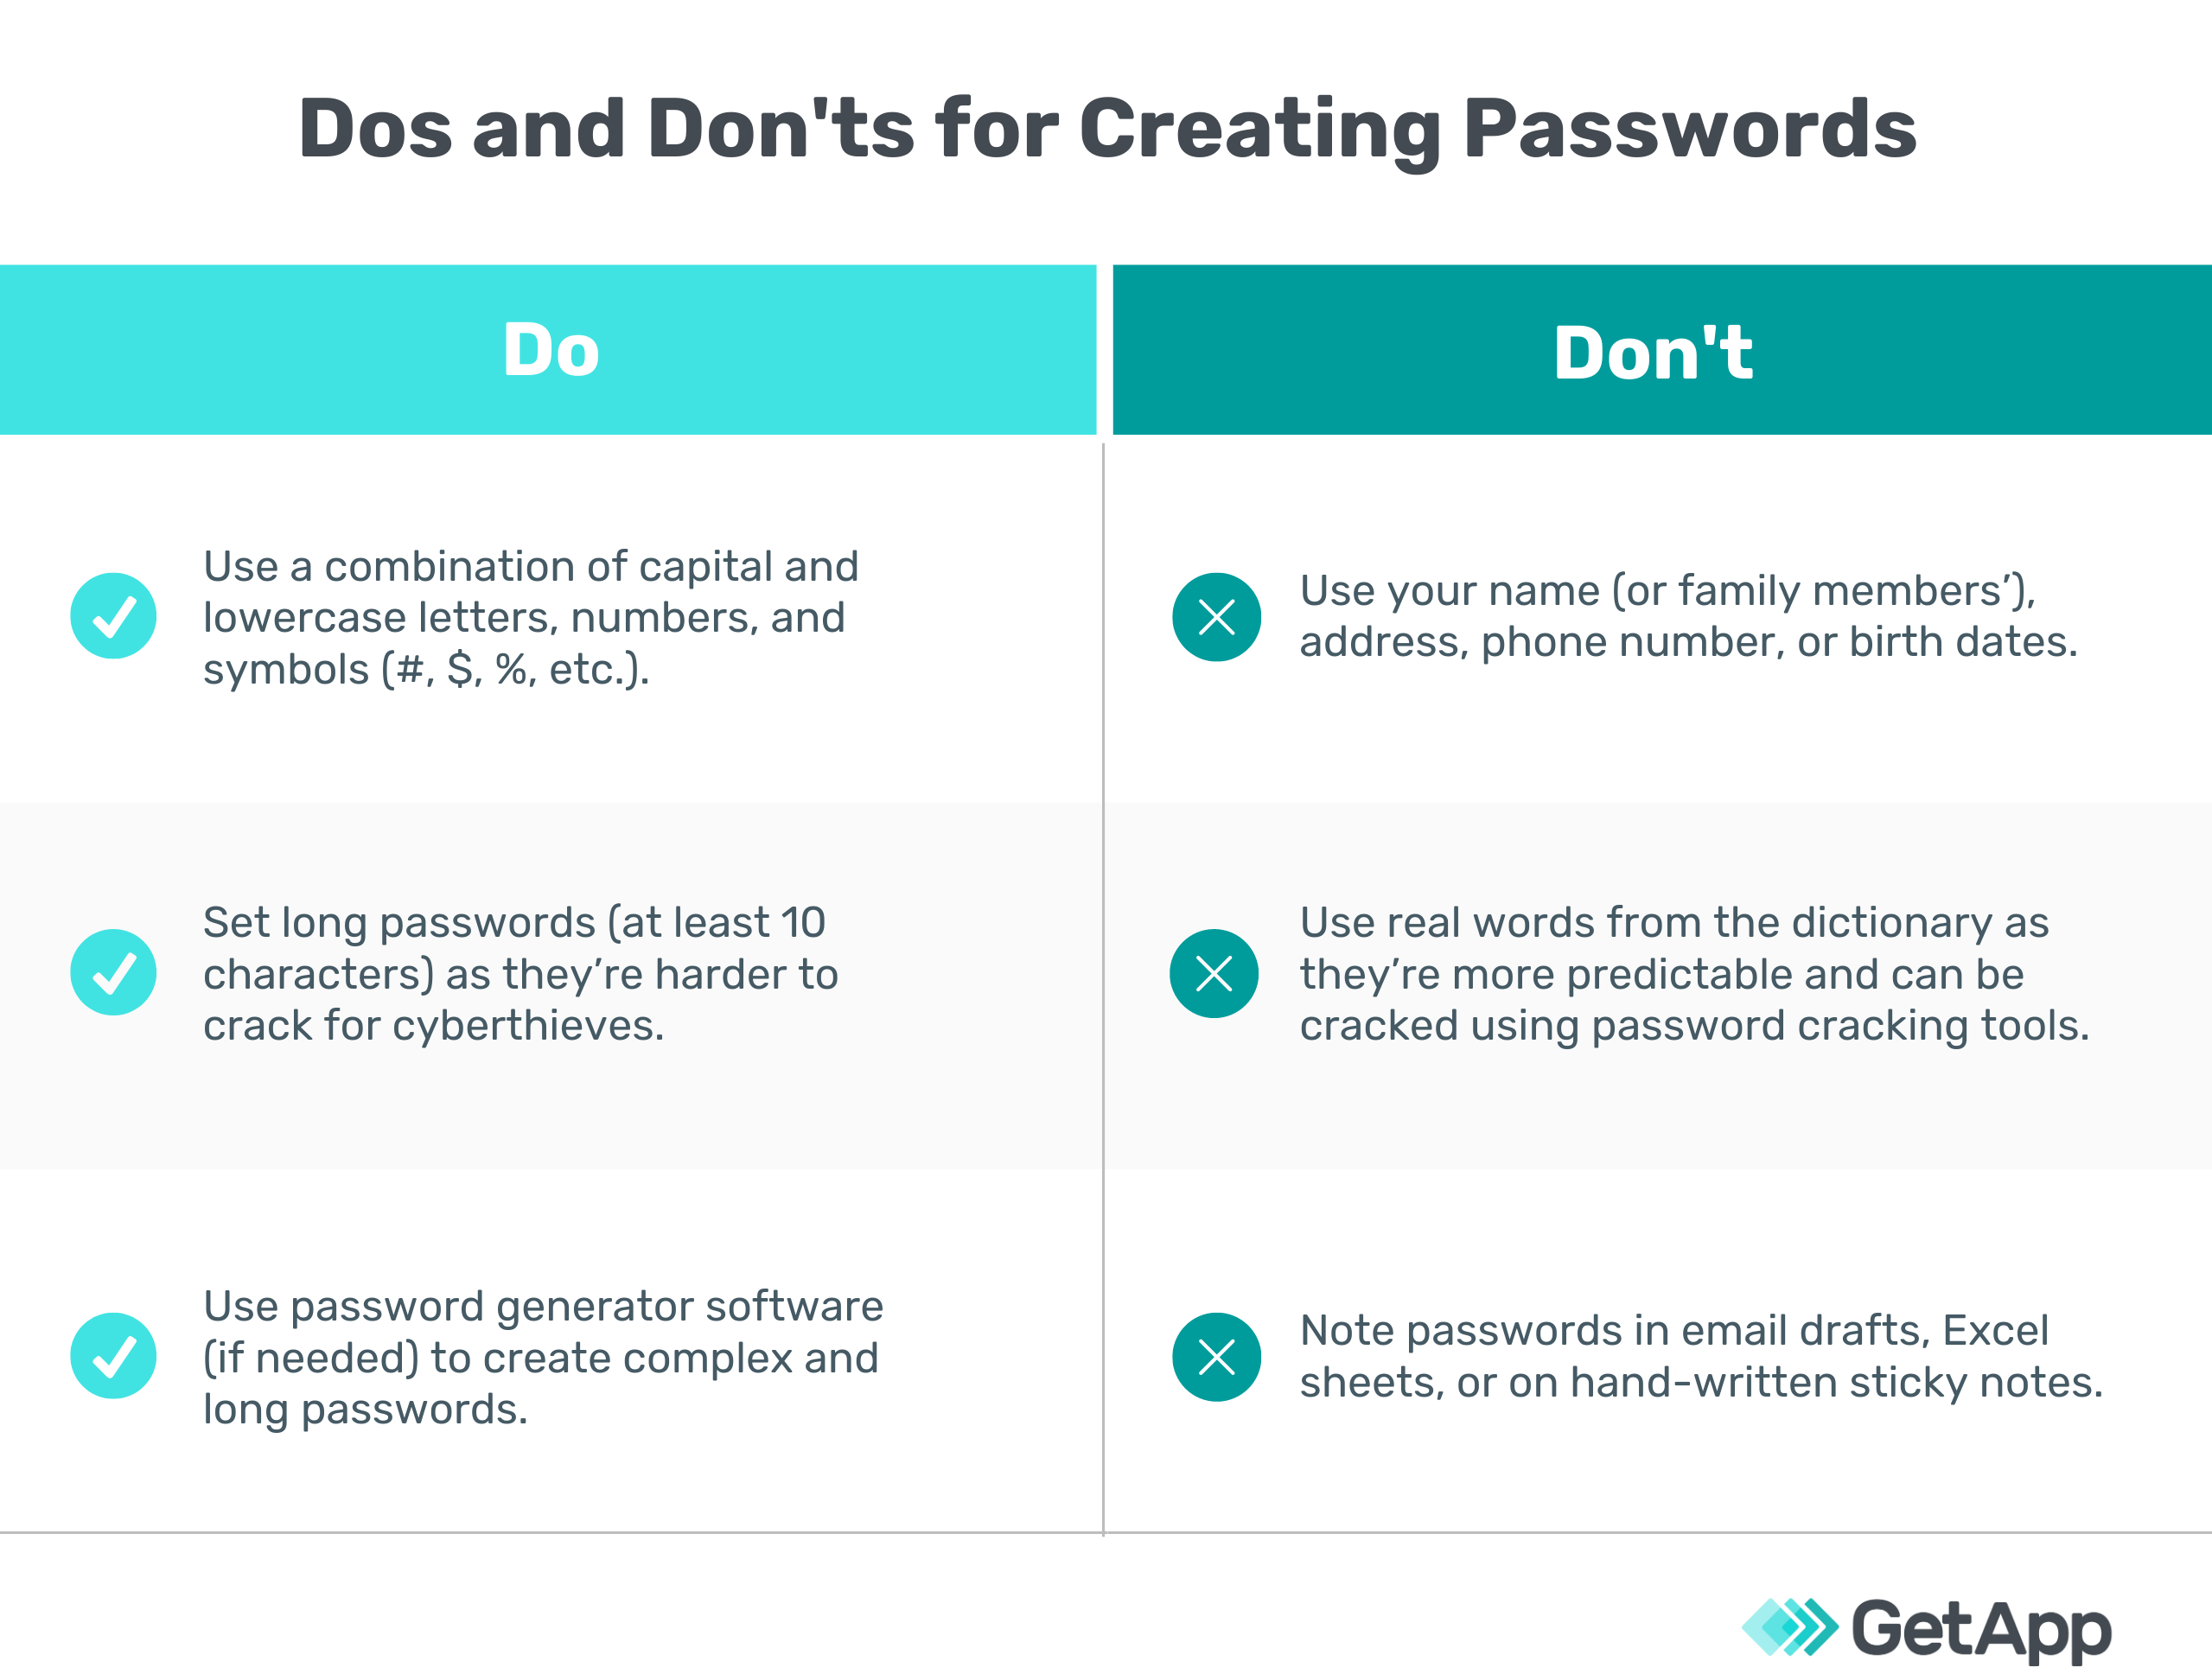 Dos and Don'ts for creating passwords